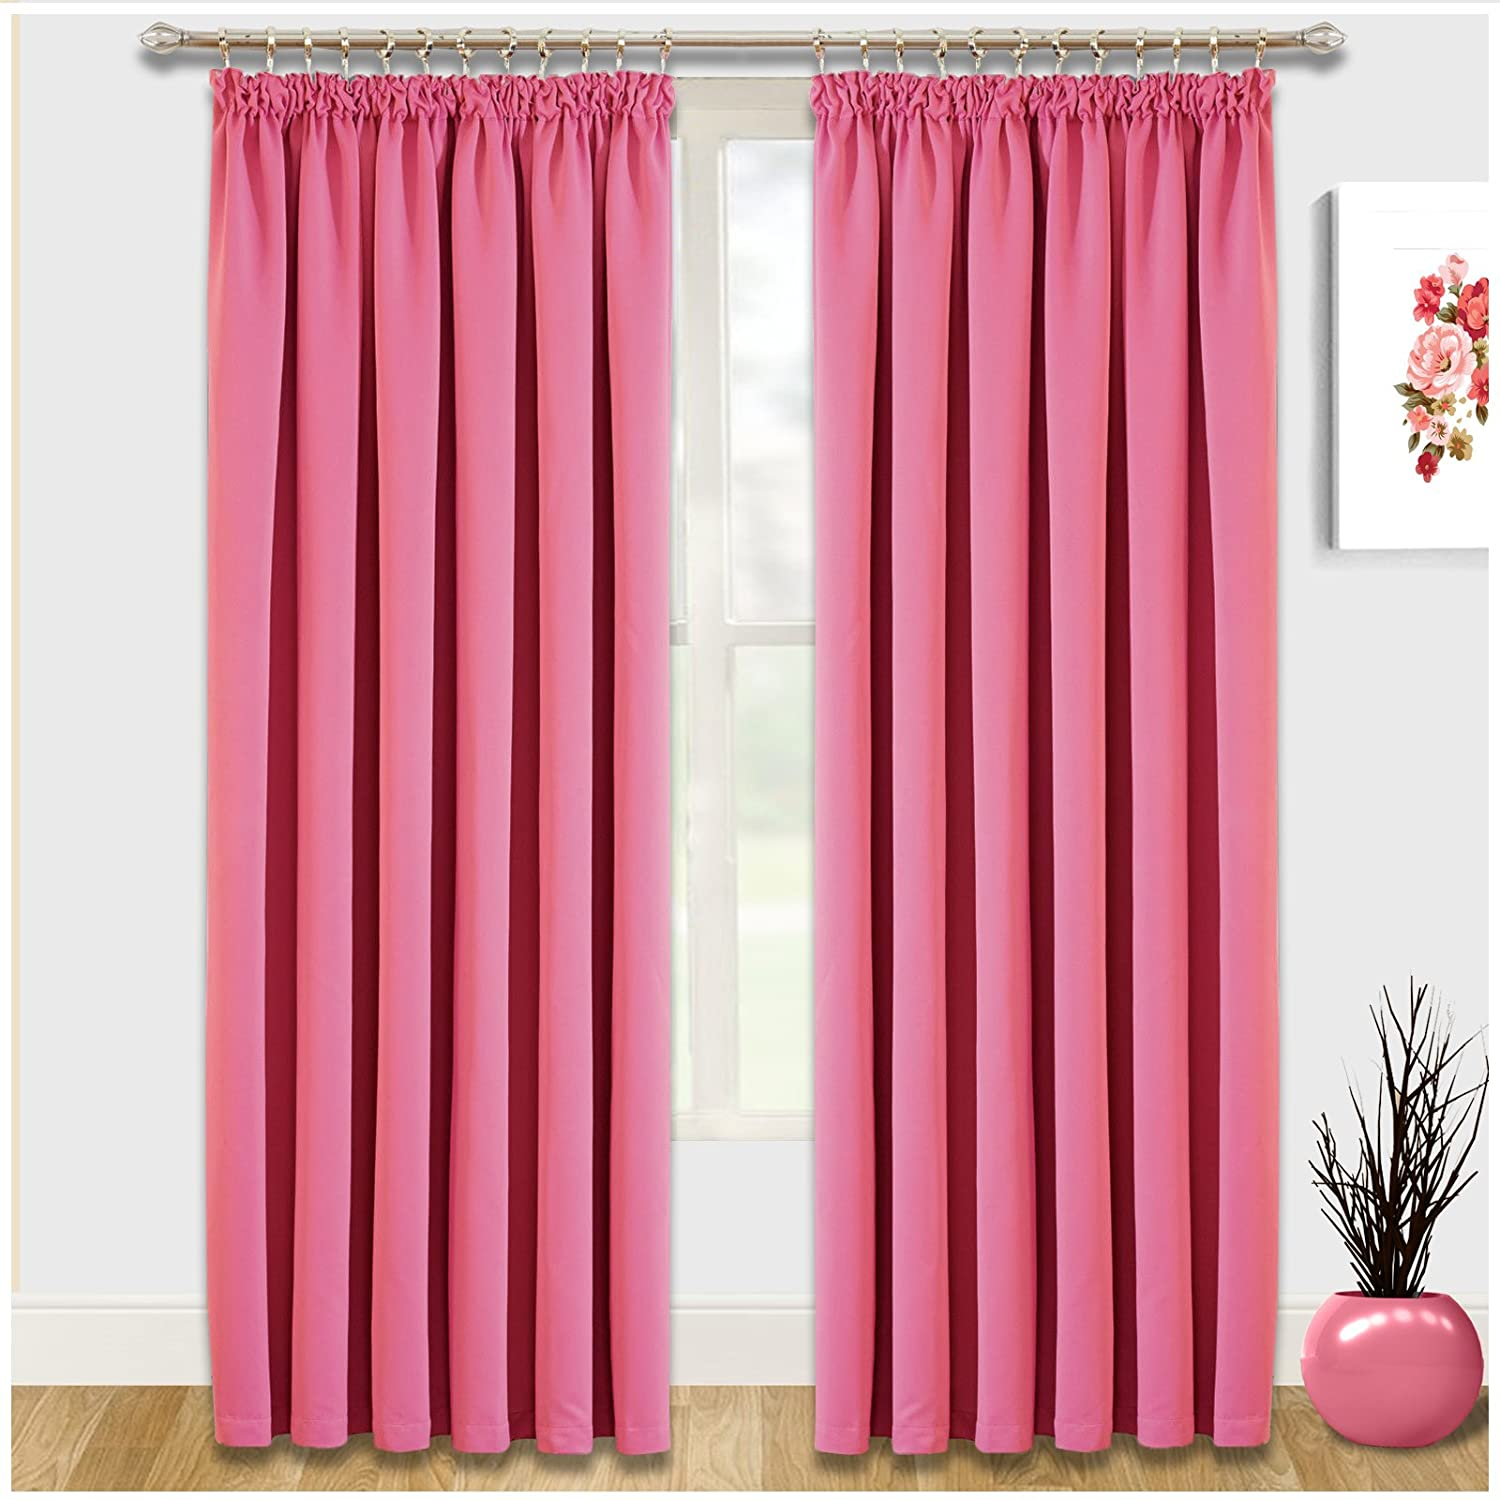 Pencil Pleat Window Blinds Thermal Insulated Blackout